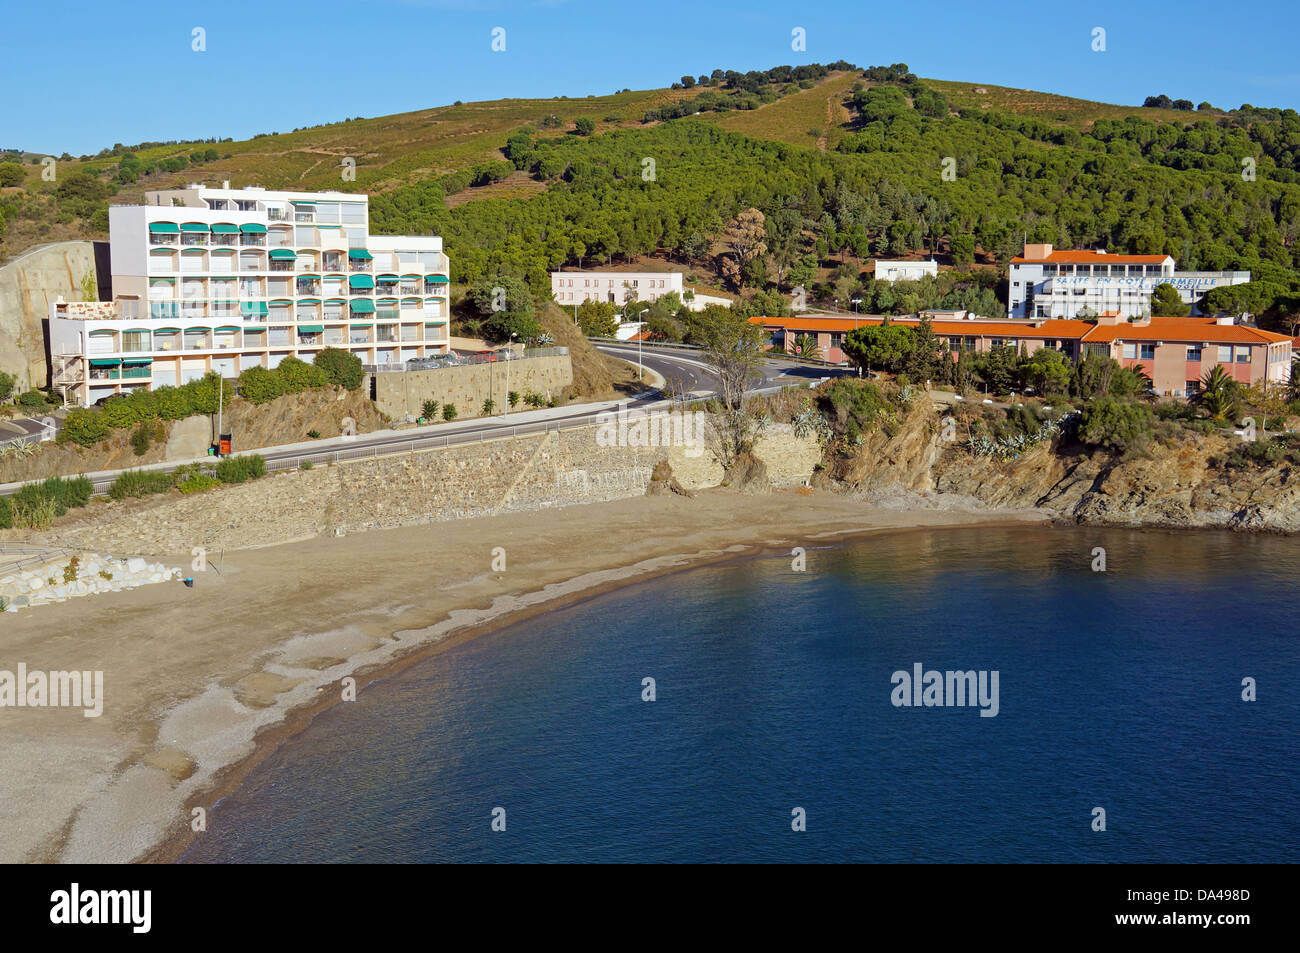 Calm Mediterranean beach with apartment building in Banyuls sur Mer, Vermilion coast, Roussillon, France - Stock Image